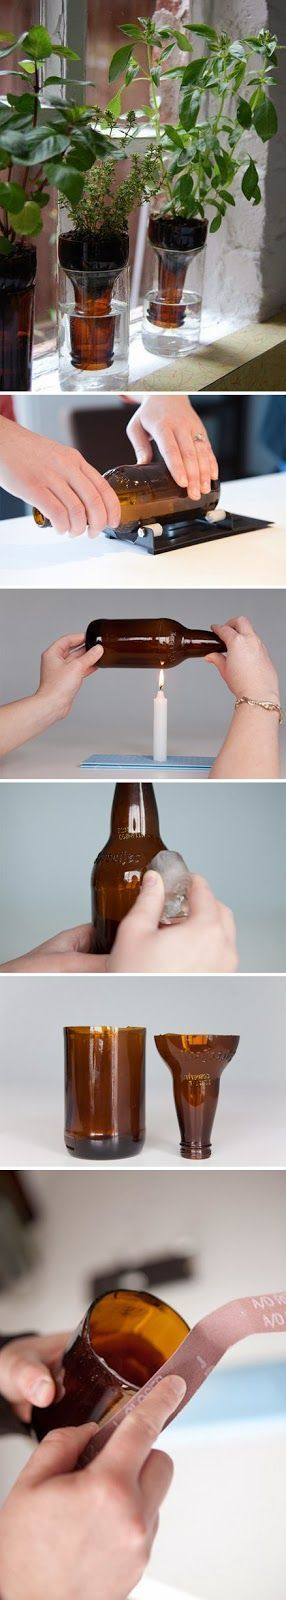 Convert Beer bottles into the shape of a vase  By using beer  bottles you can make such vases on your own. Just cut the bottle and  sh...